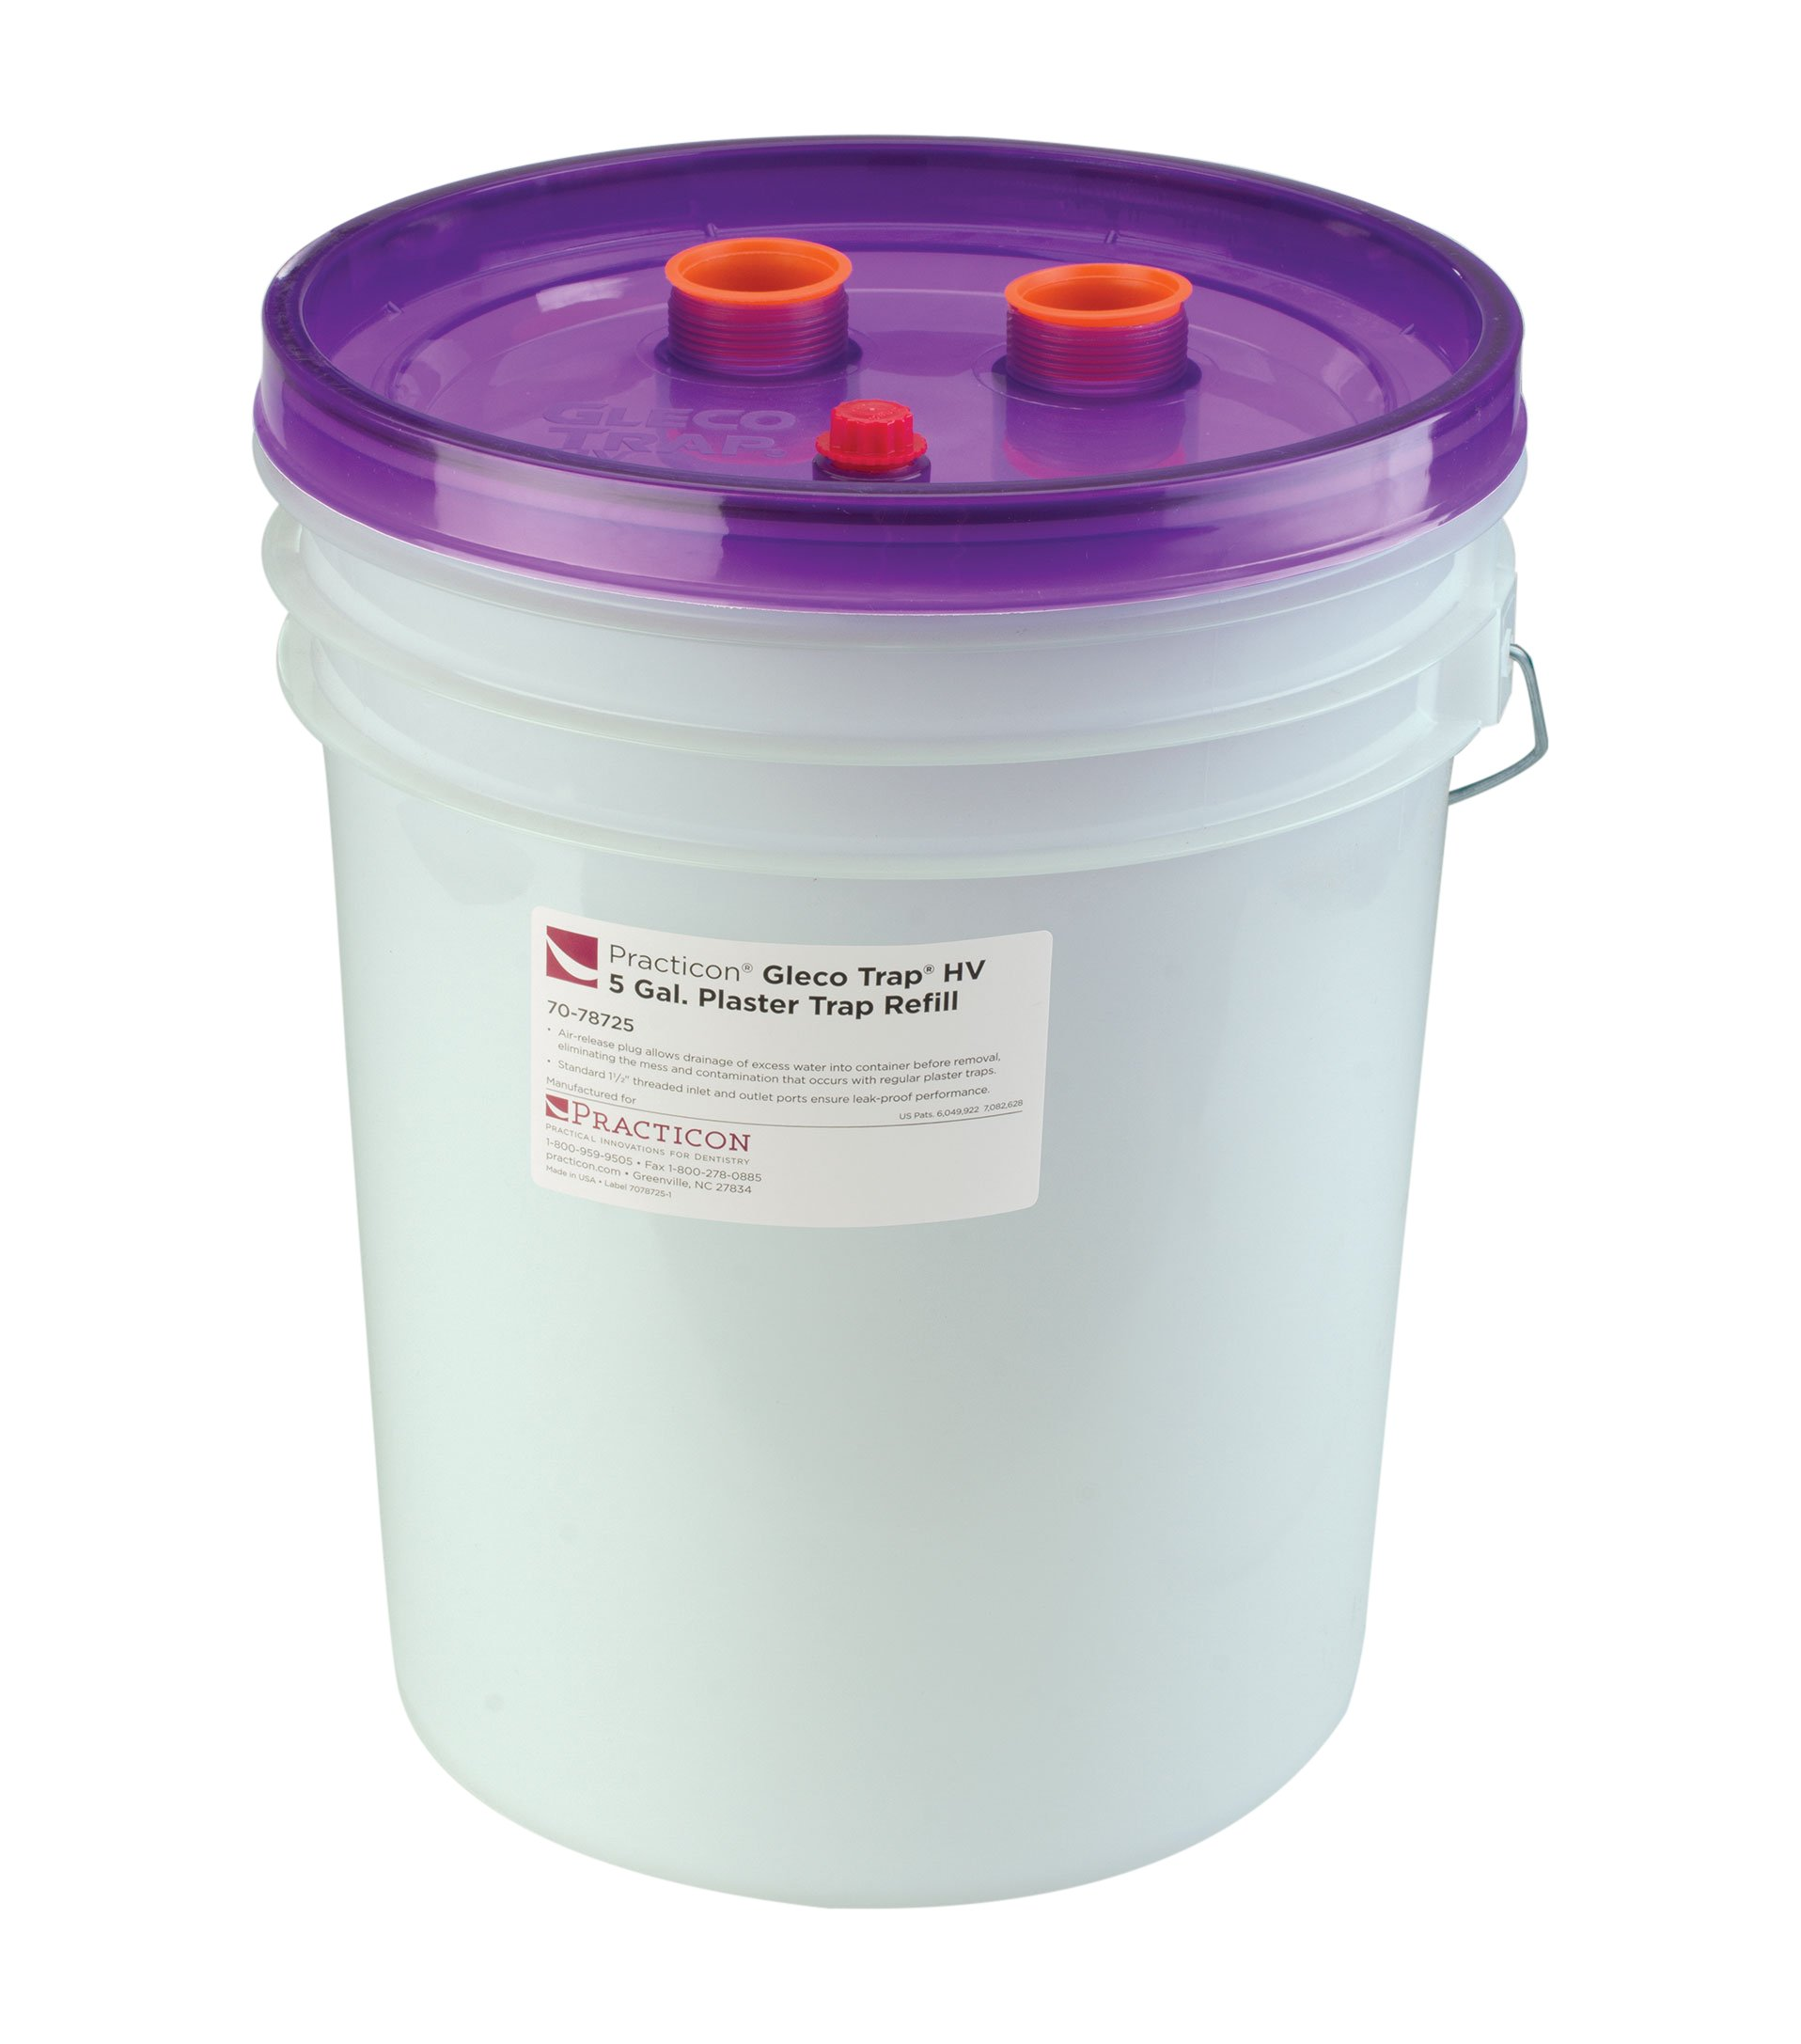 Practicon 7078725 Gleco Trap HV Refill, 5 gal by Practicon (Image #1)